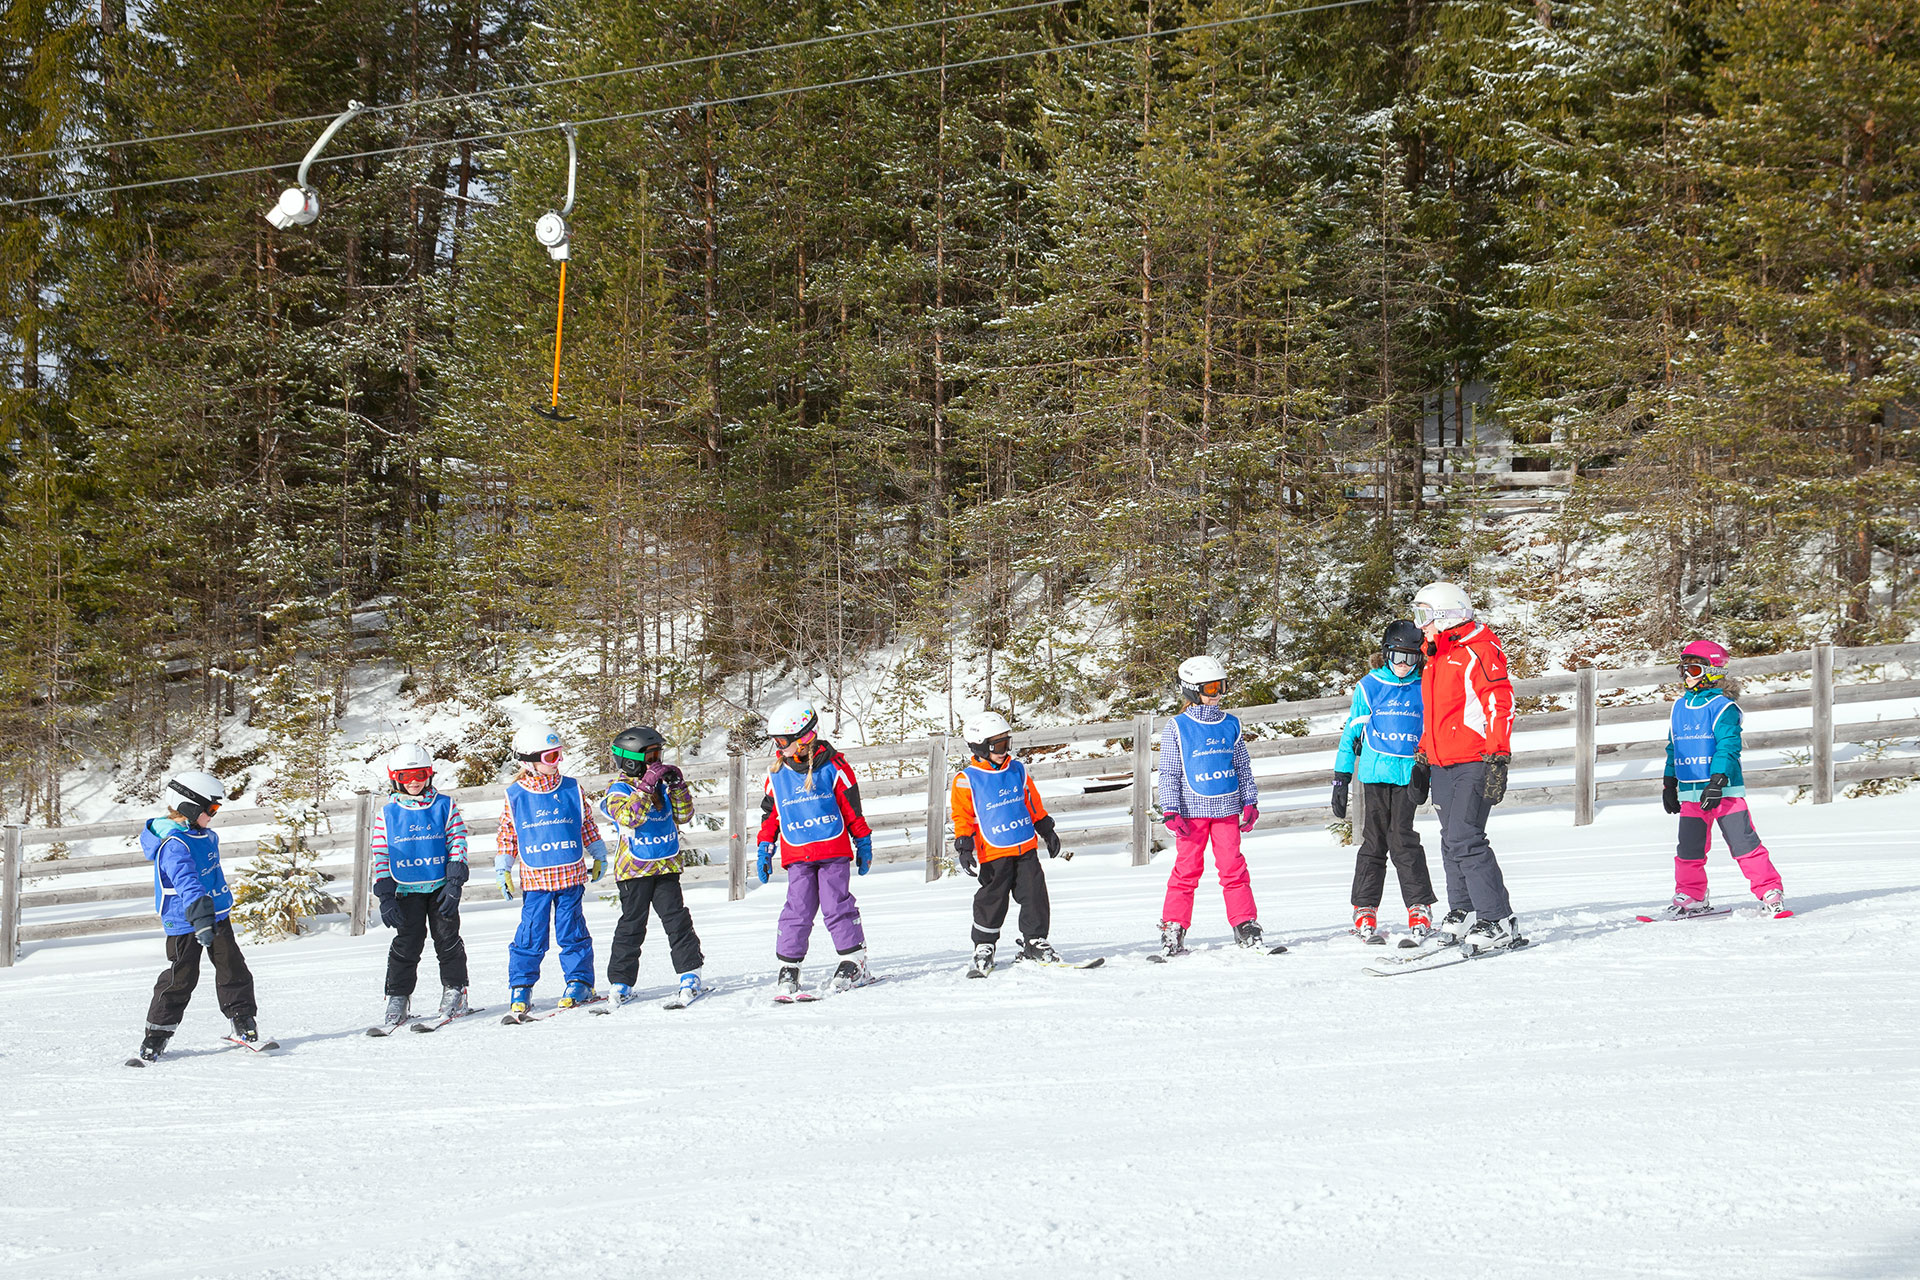 A group of kids getting a ski lesson.